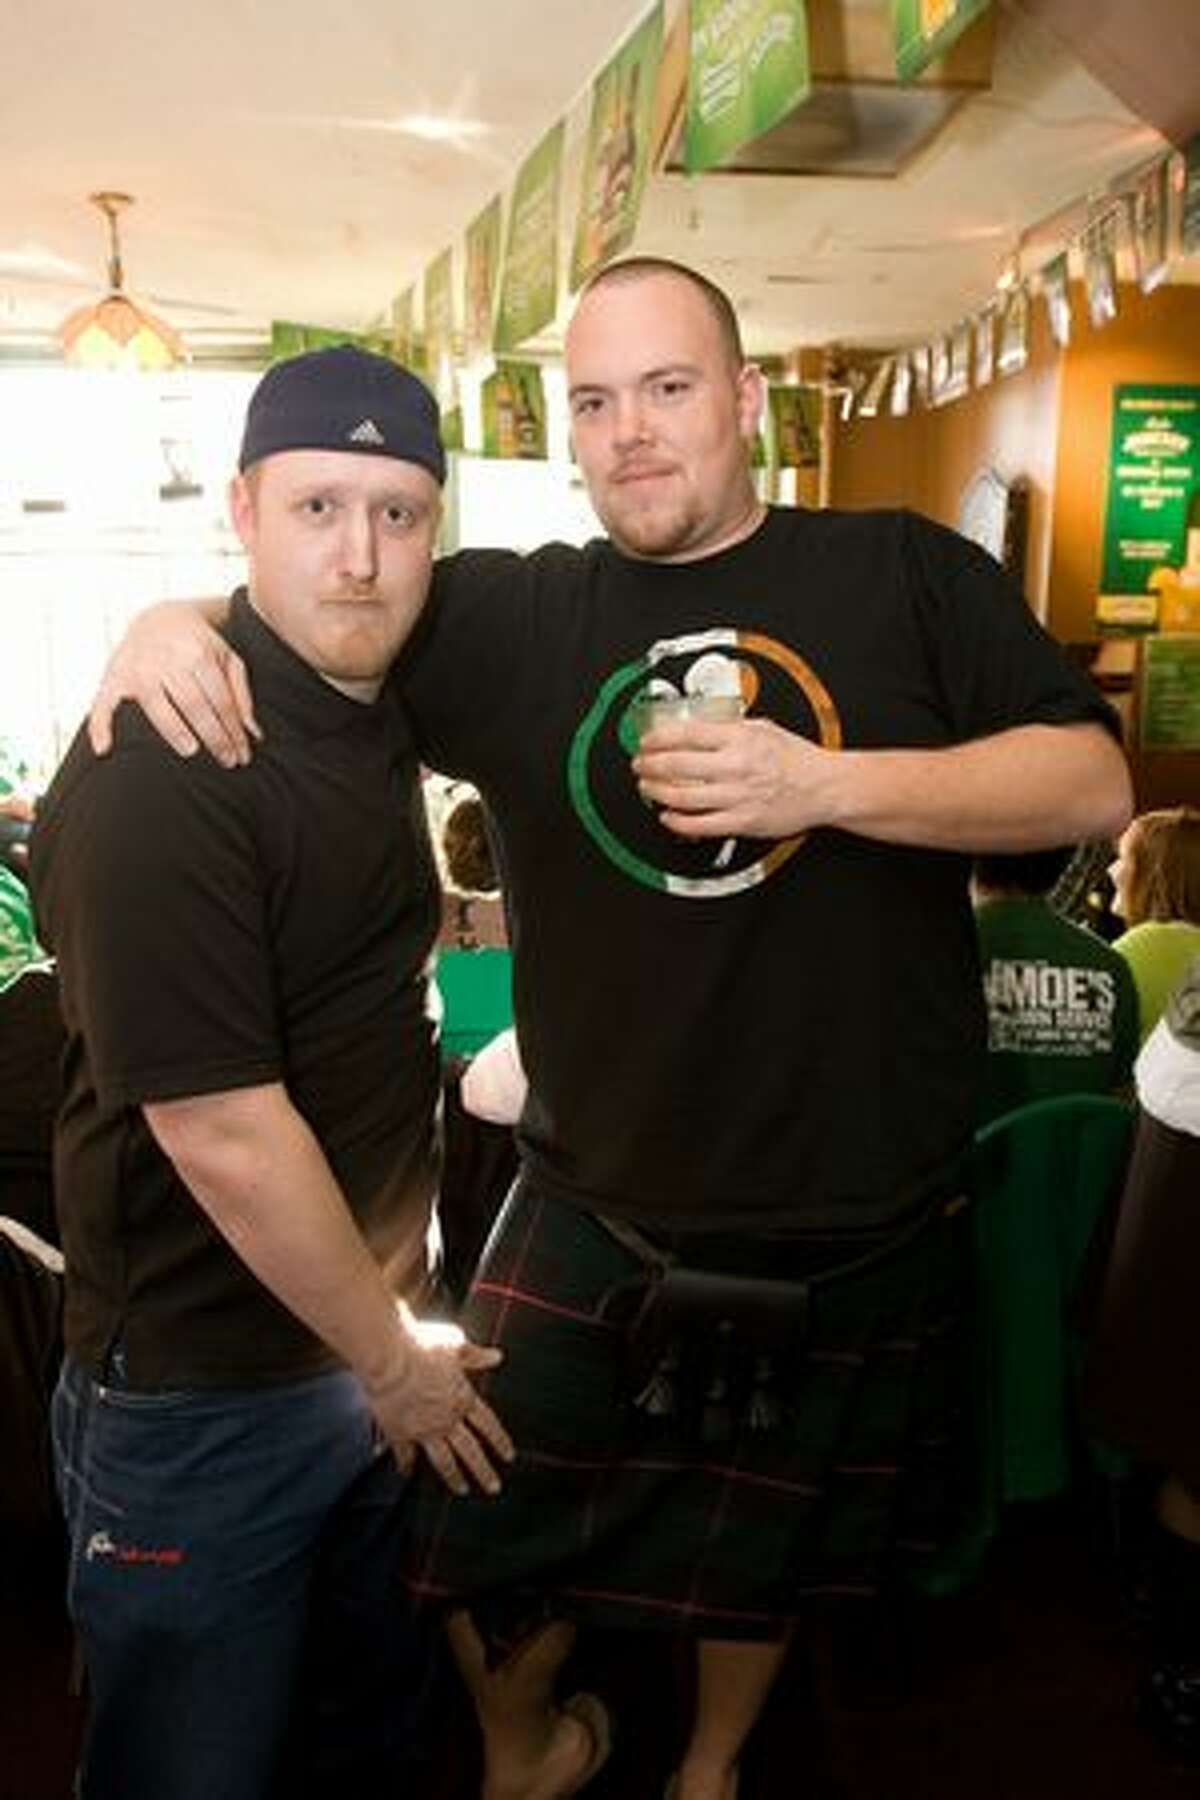 Patrons celebrate St. Patrick's Day at the Owl'n Thistle Irish pub in downtown Seattle.